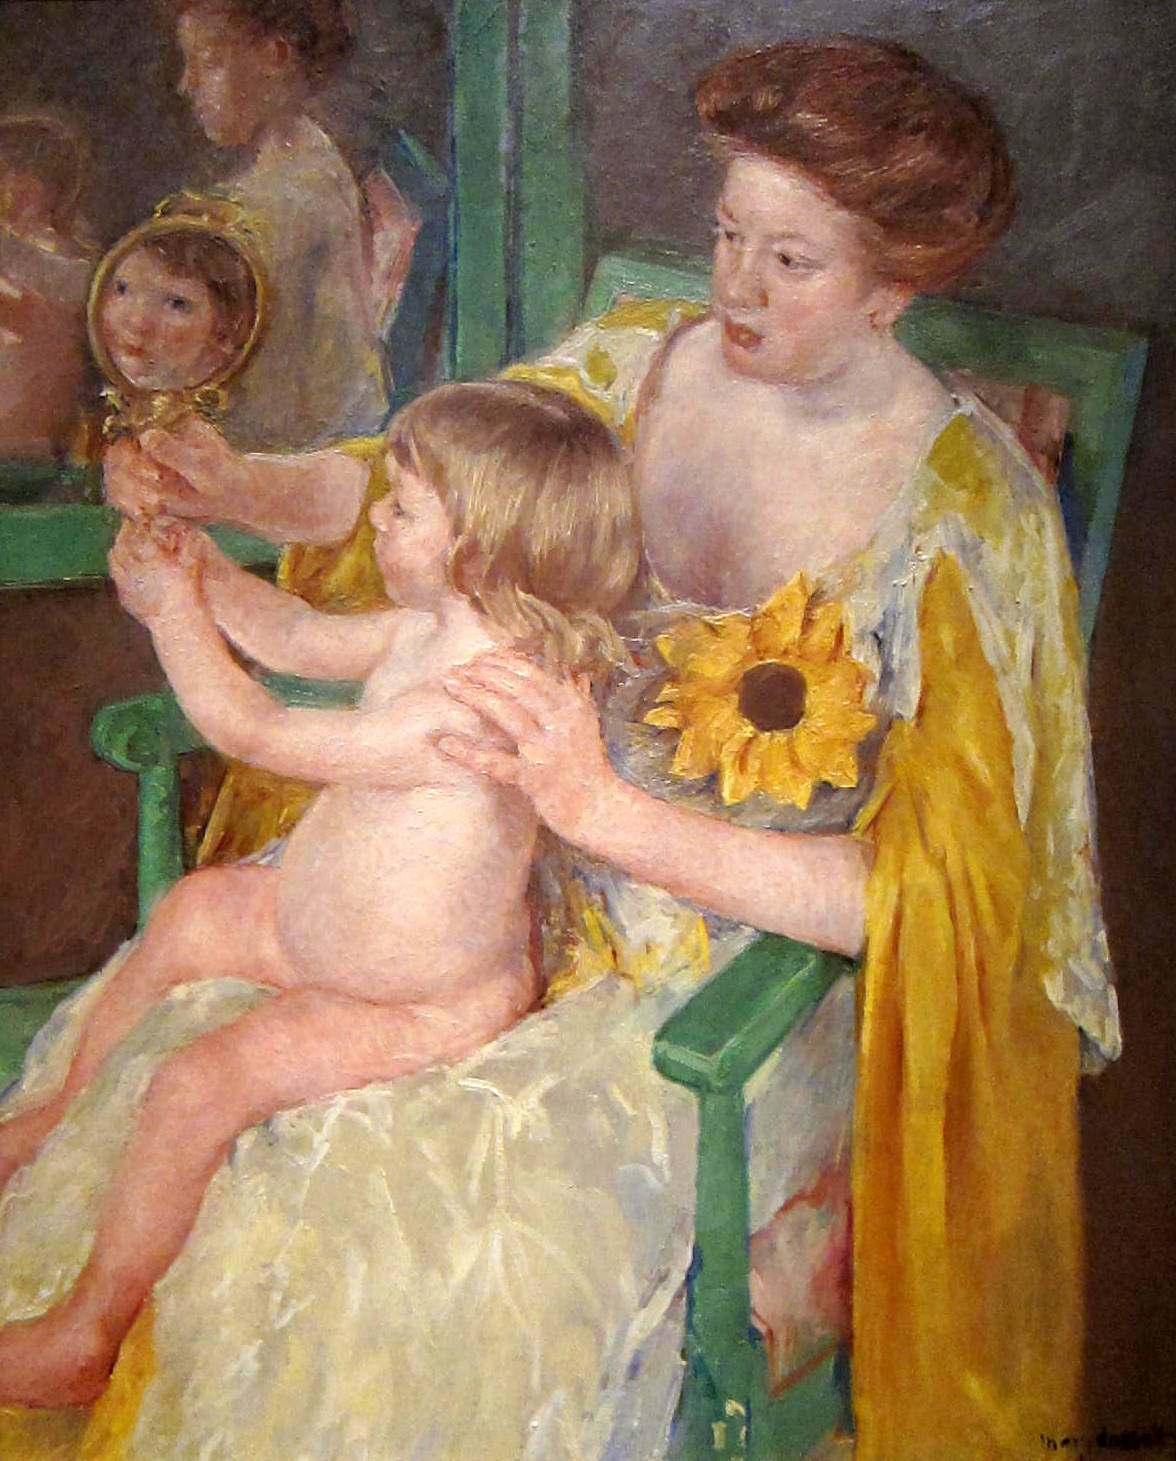 https://i2.wp.com/upload.wikimedia.org/wikipedia/commons/b/b9/Mother_and_Child_-_Mary_Cassatt.JPG